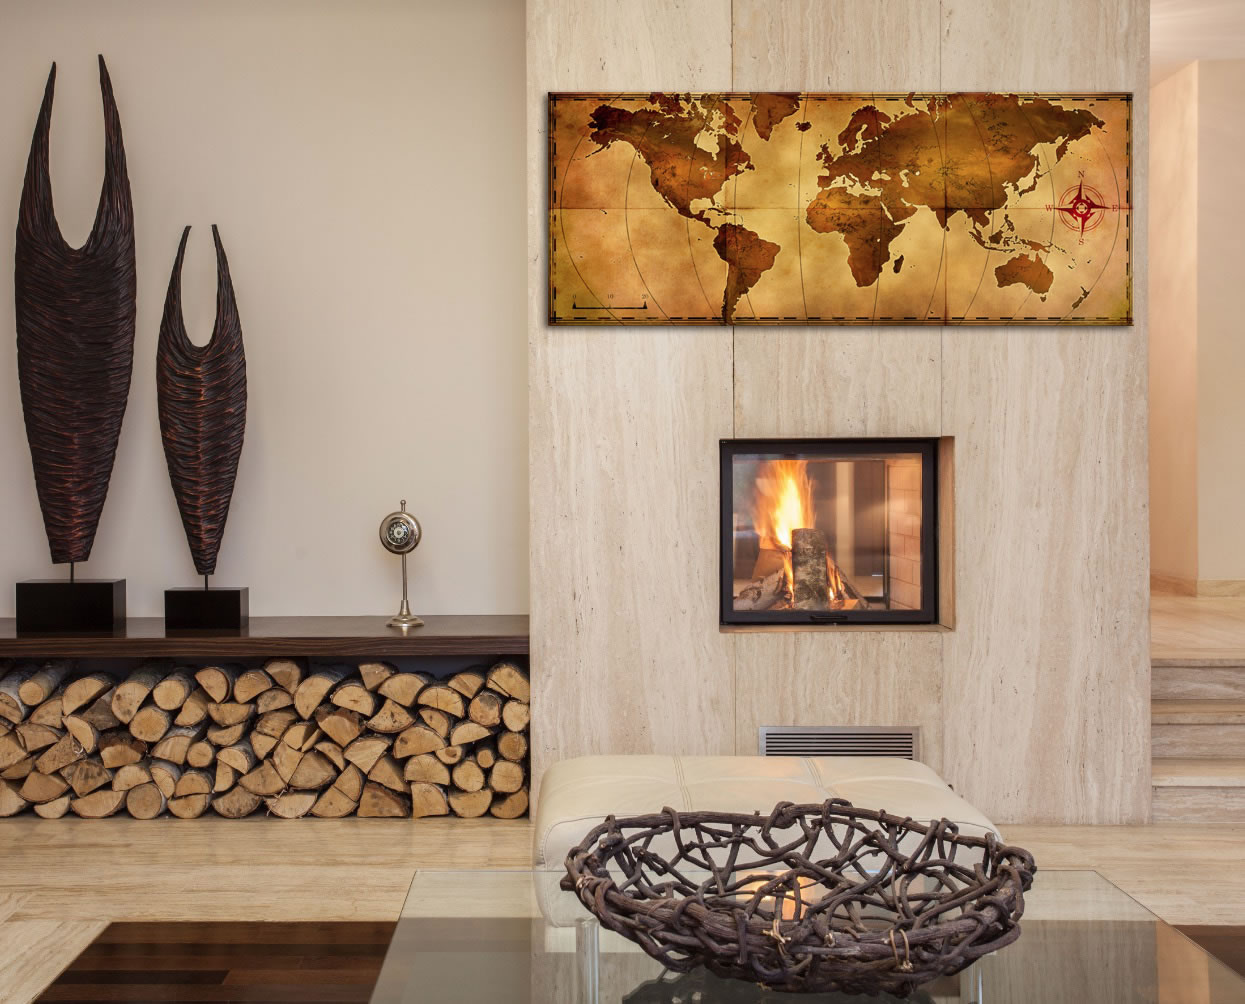 Old World Map - Contemporary Metal Wall Art - Lifestyle Image